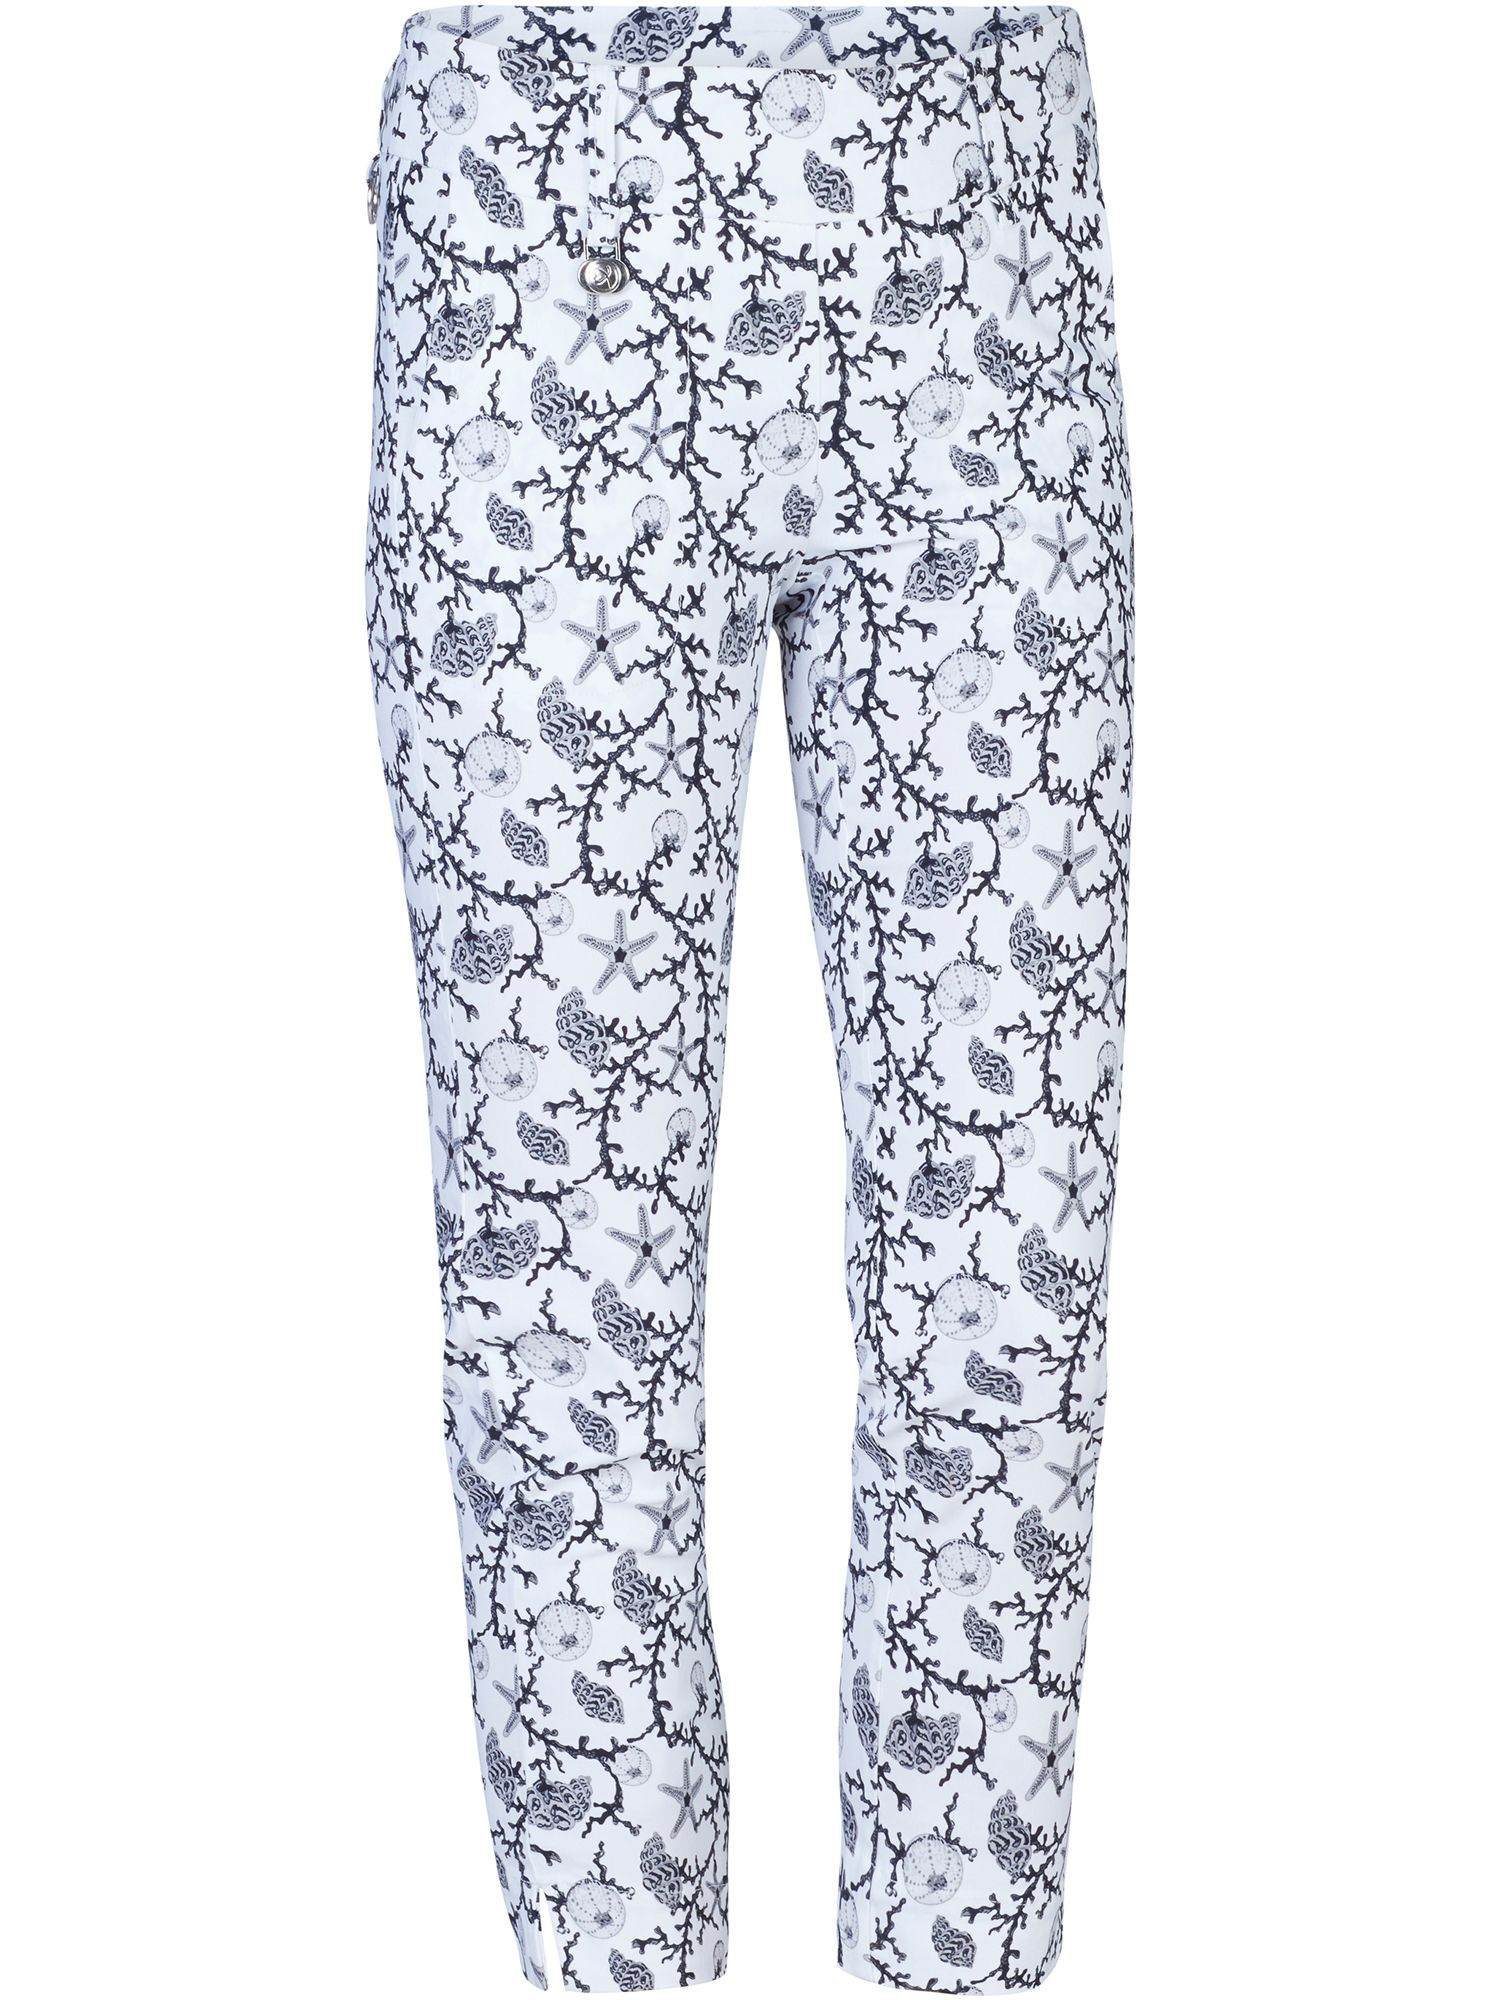 Daily Sports Coral High Water Trousers, White